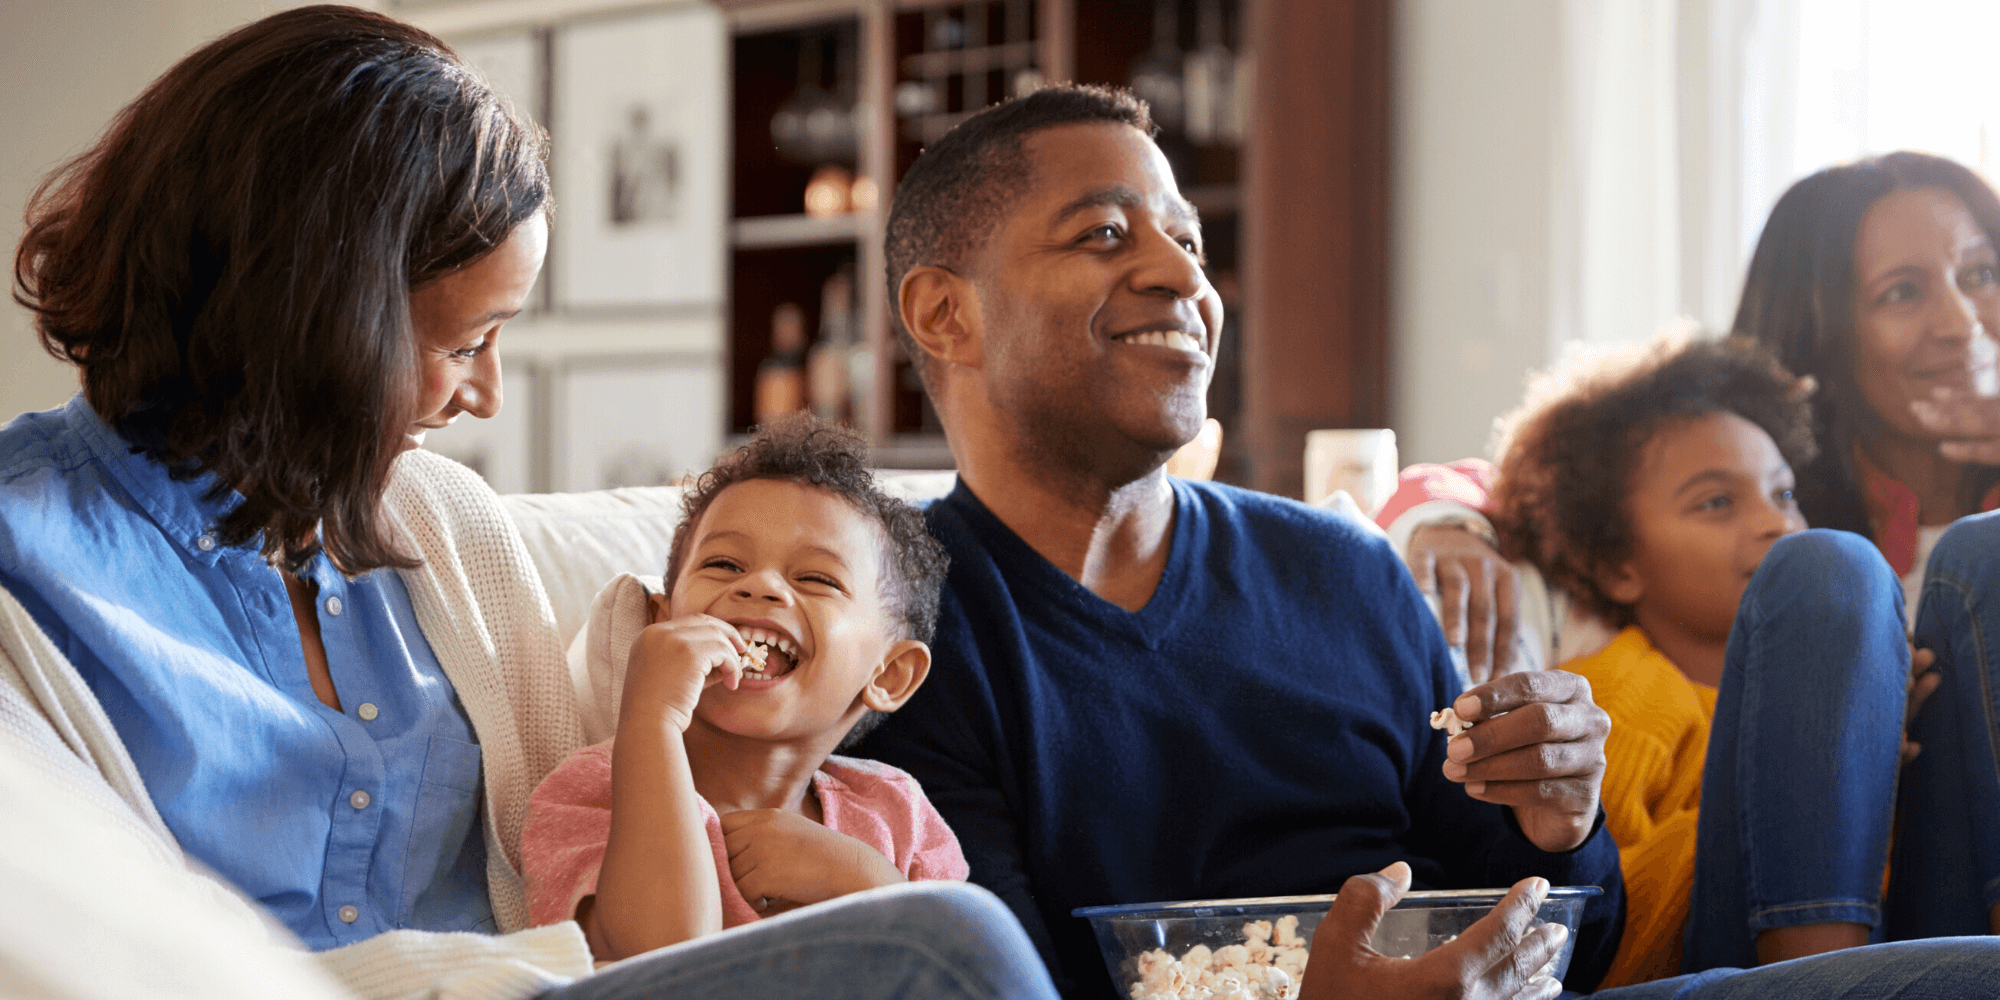 Family watching movies at home with popcorn